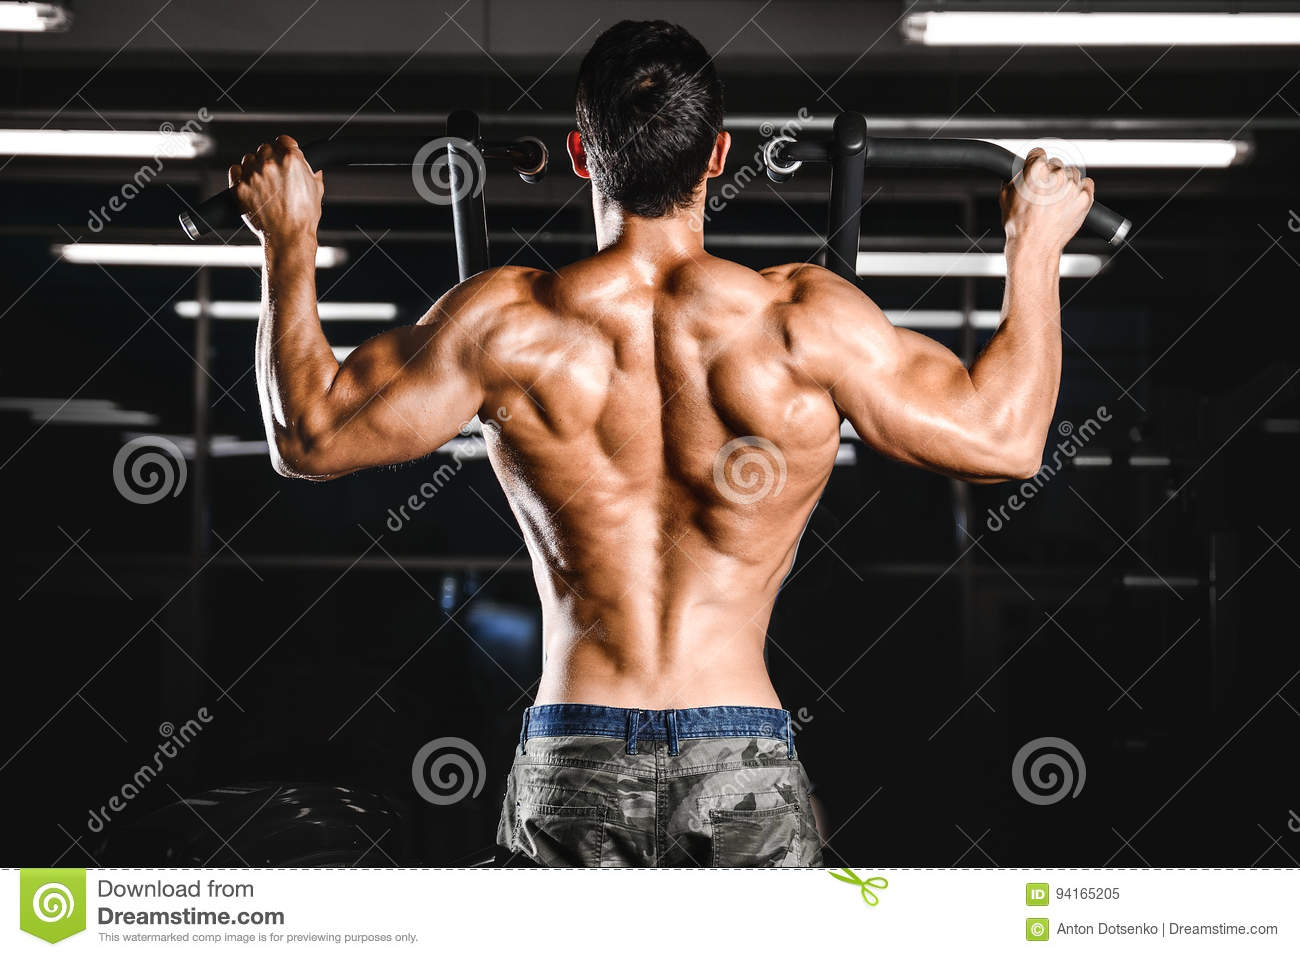 Handsome Power Athletic Man Diet Training Pumping Up Back Muscle